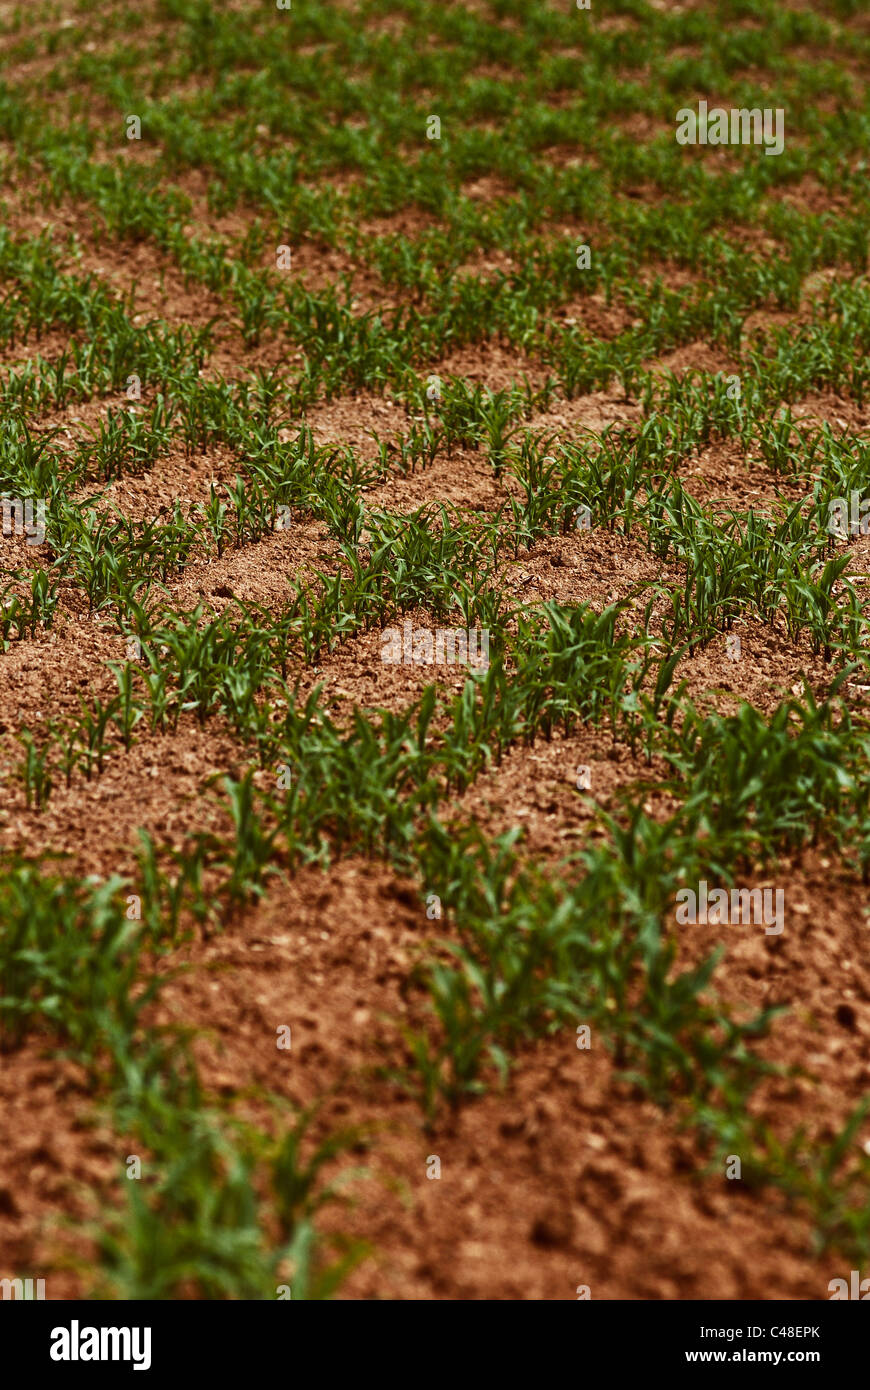 young corn seedling rows overlap forming a checkerboard pattern - Stock Image